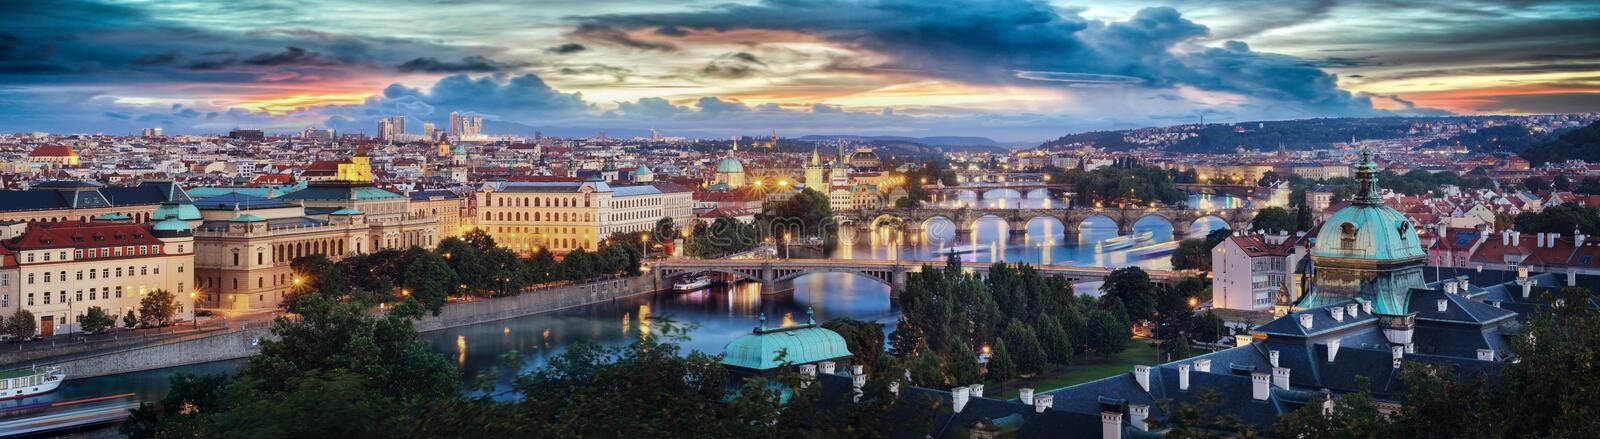 High quality sunset panoramic view of the Charles bridge on Vltava river and Old town in Prague, Czech republic. royalty free stock photo